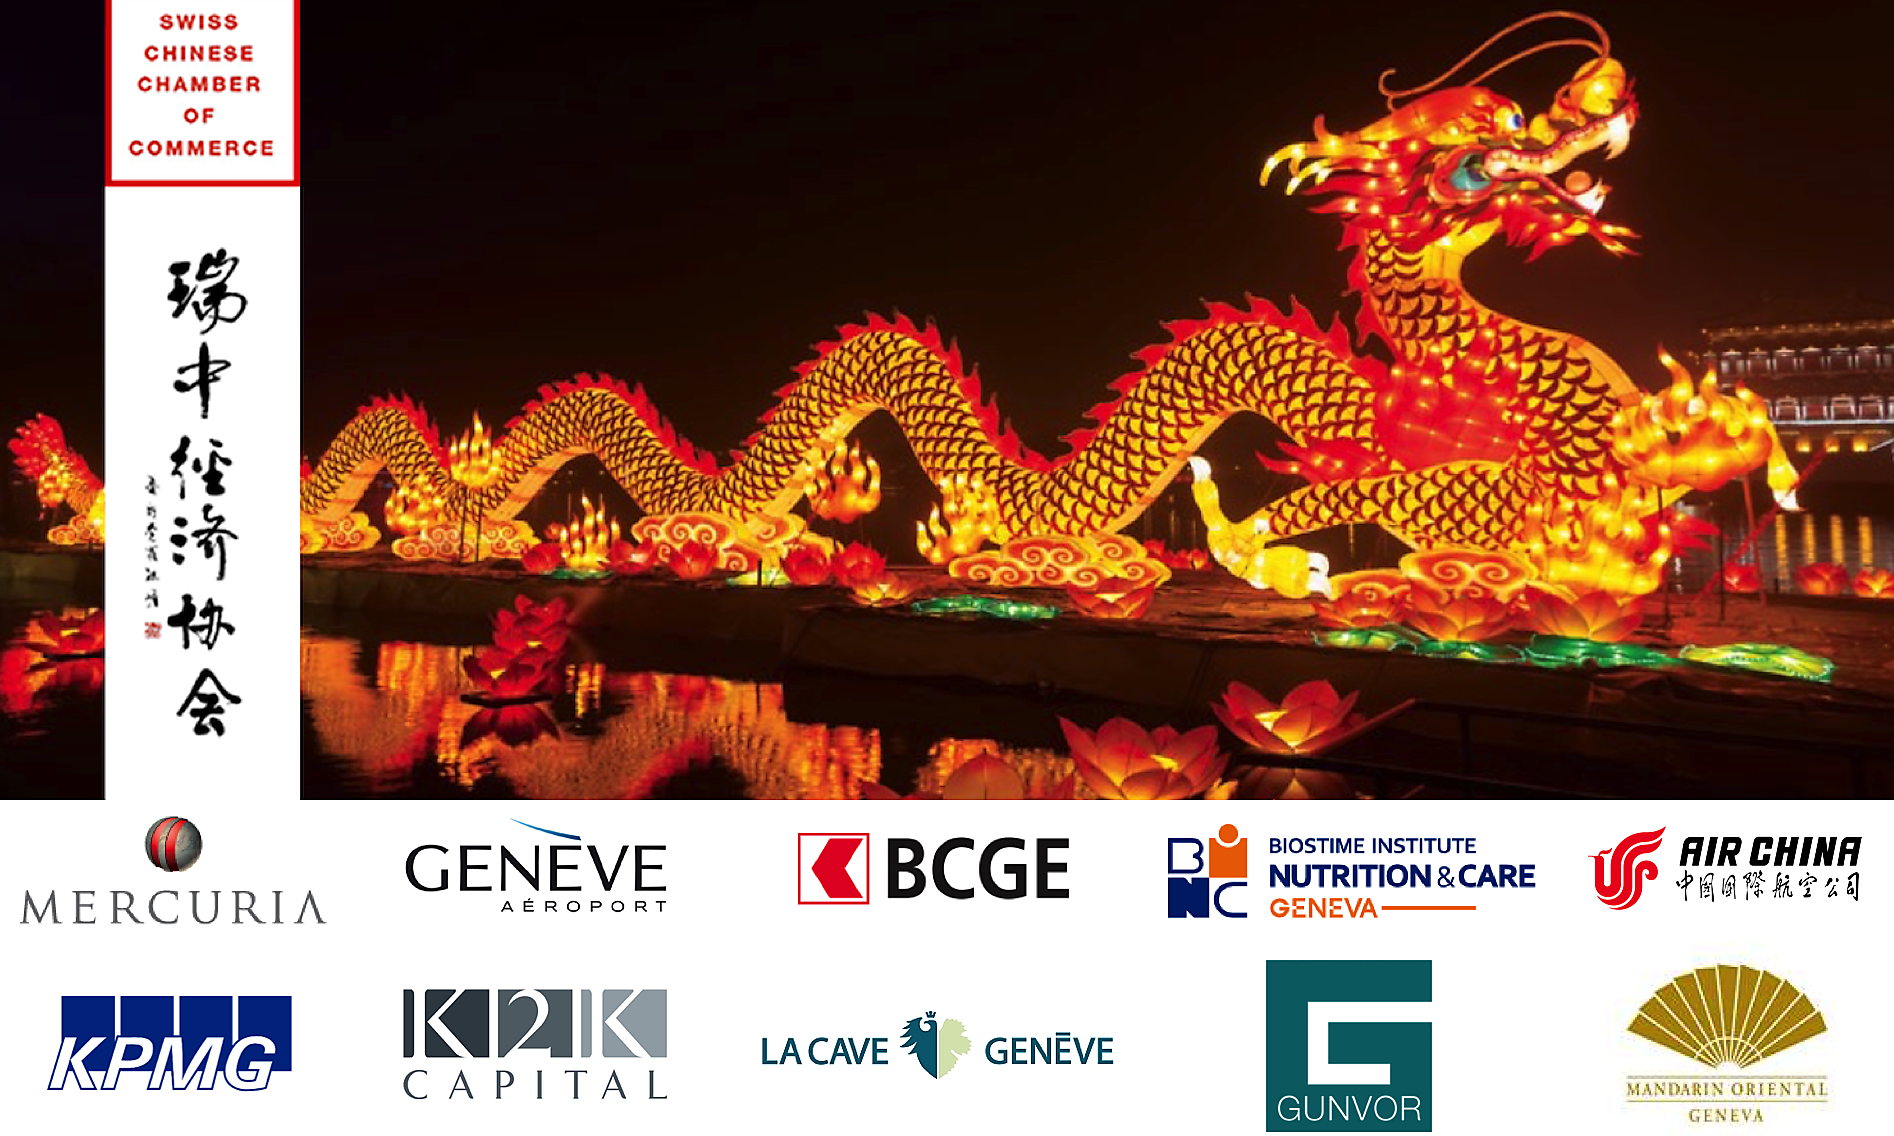 dear members and friends of the swiss chinese chamber of commerce geneva chapter we are delighted to invite you to the traditional chinese new year